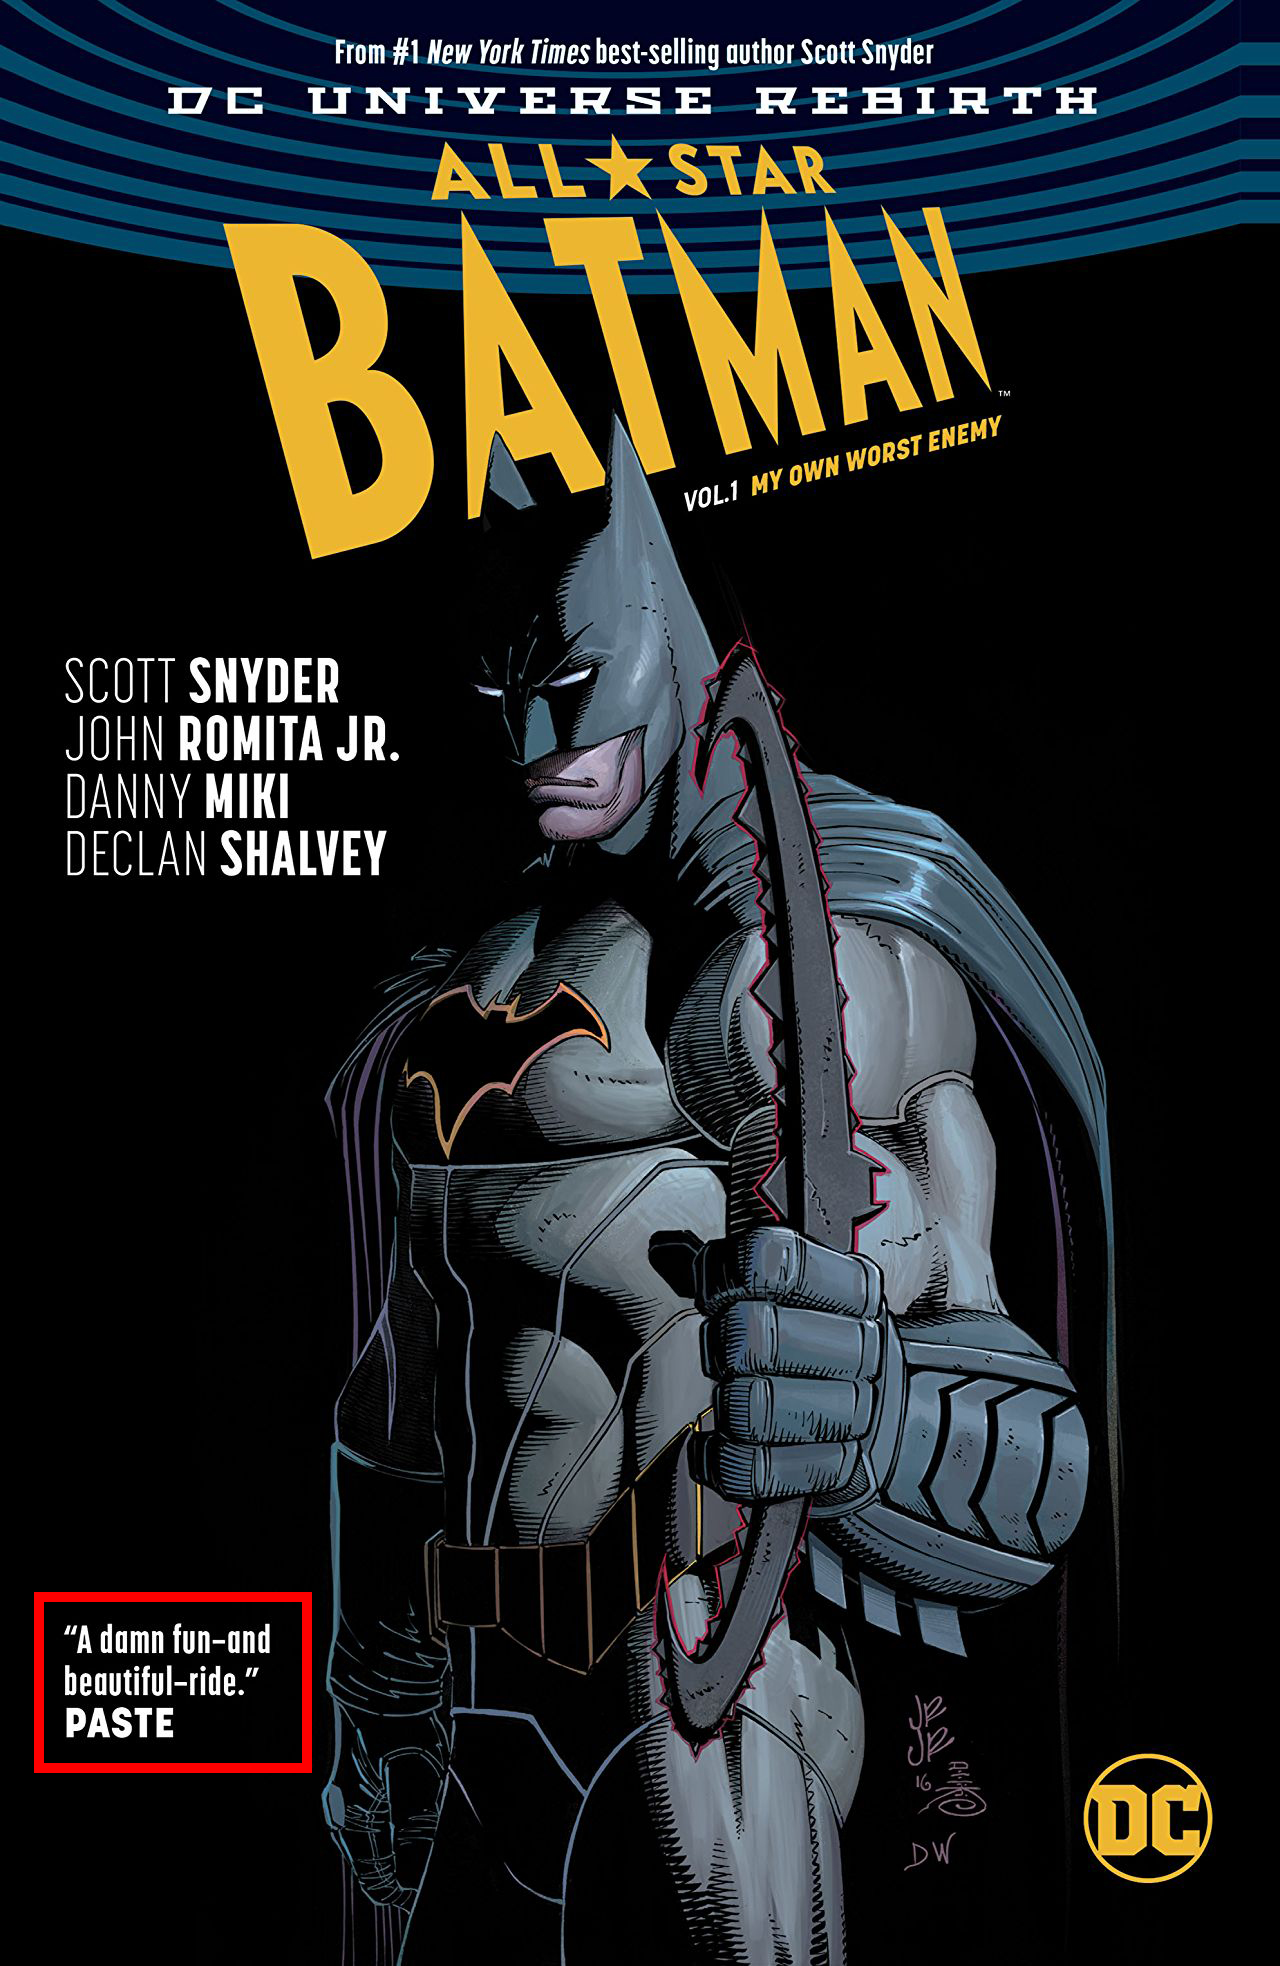 All-Star Batman  Vol. 1, by Scott Snyder and John Romita Jr.